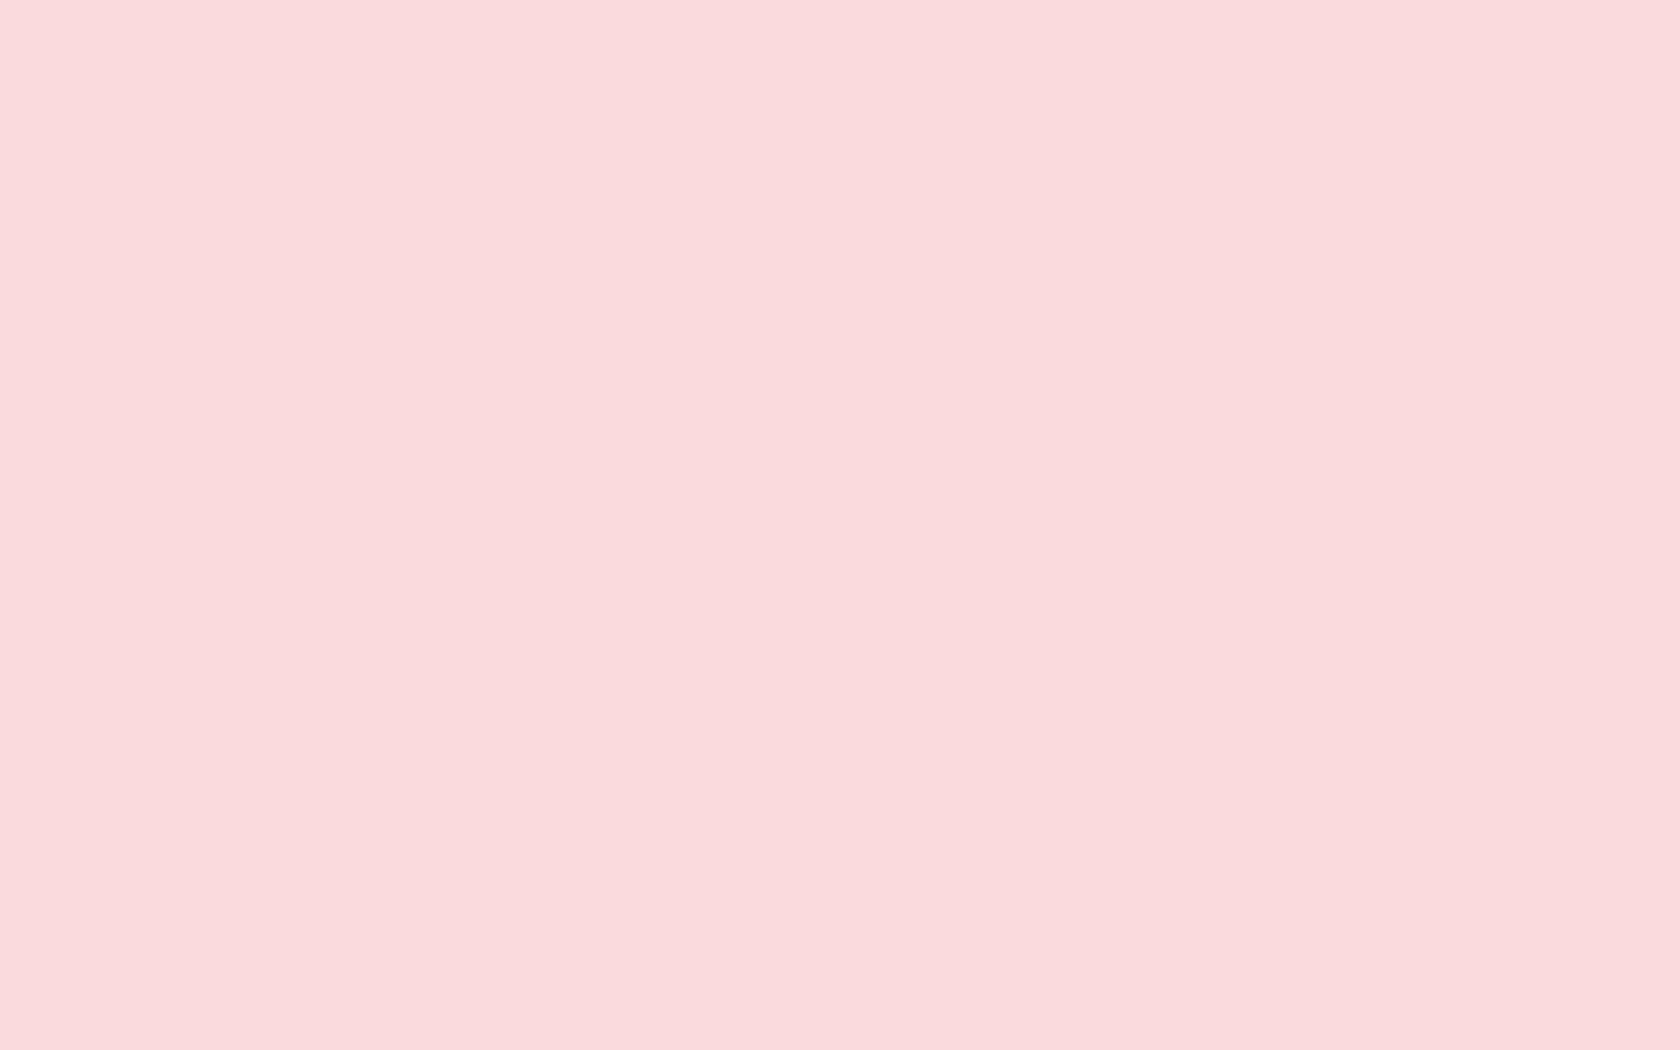 1680x1050 Pale Pink Solid Color Background